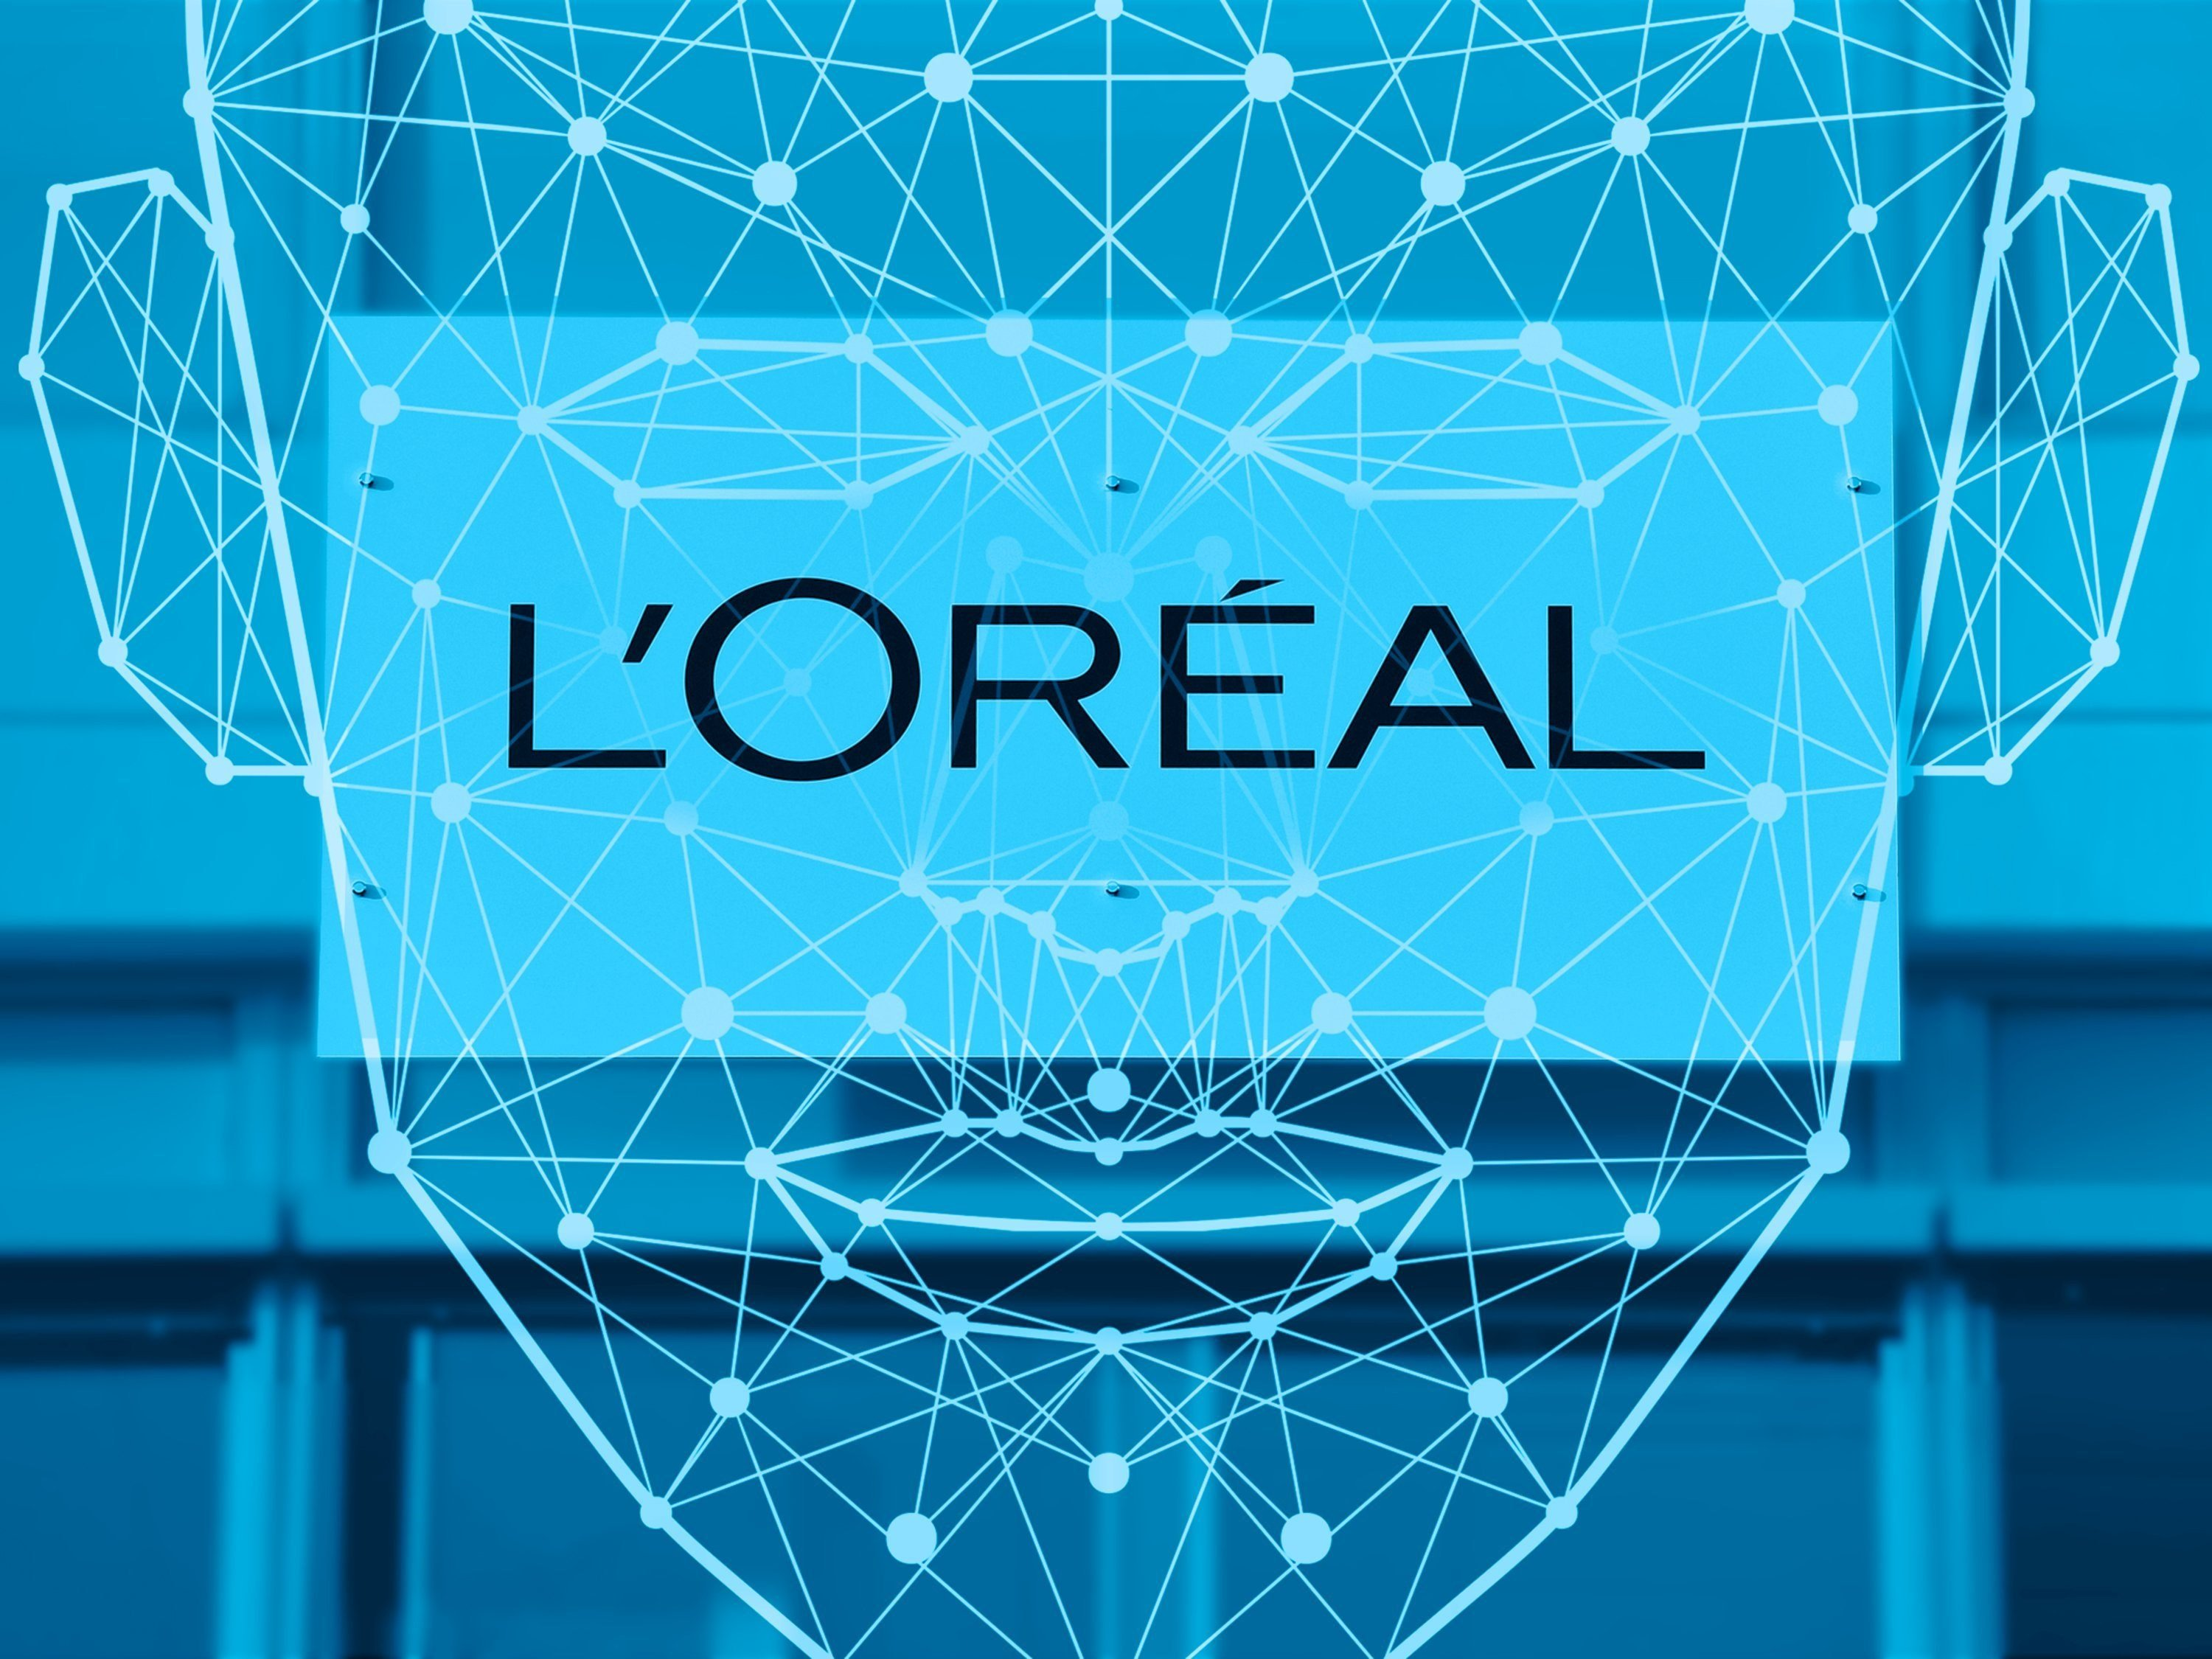 L'Oreal acquires app provider that gives virtual makeovers